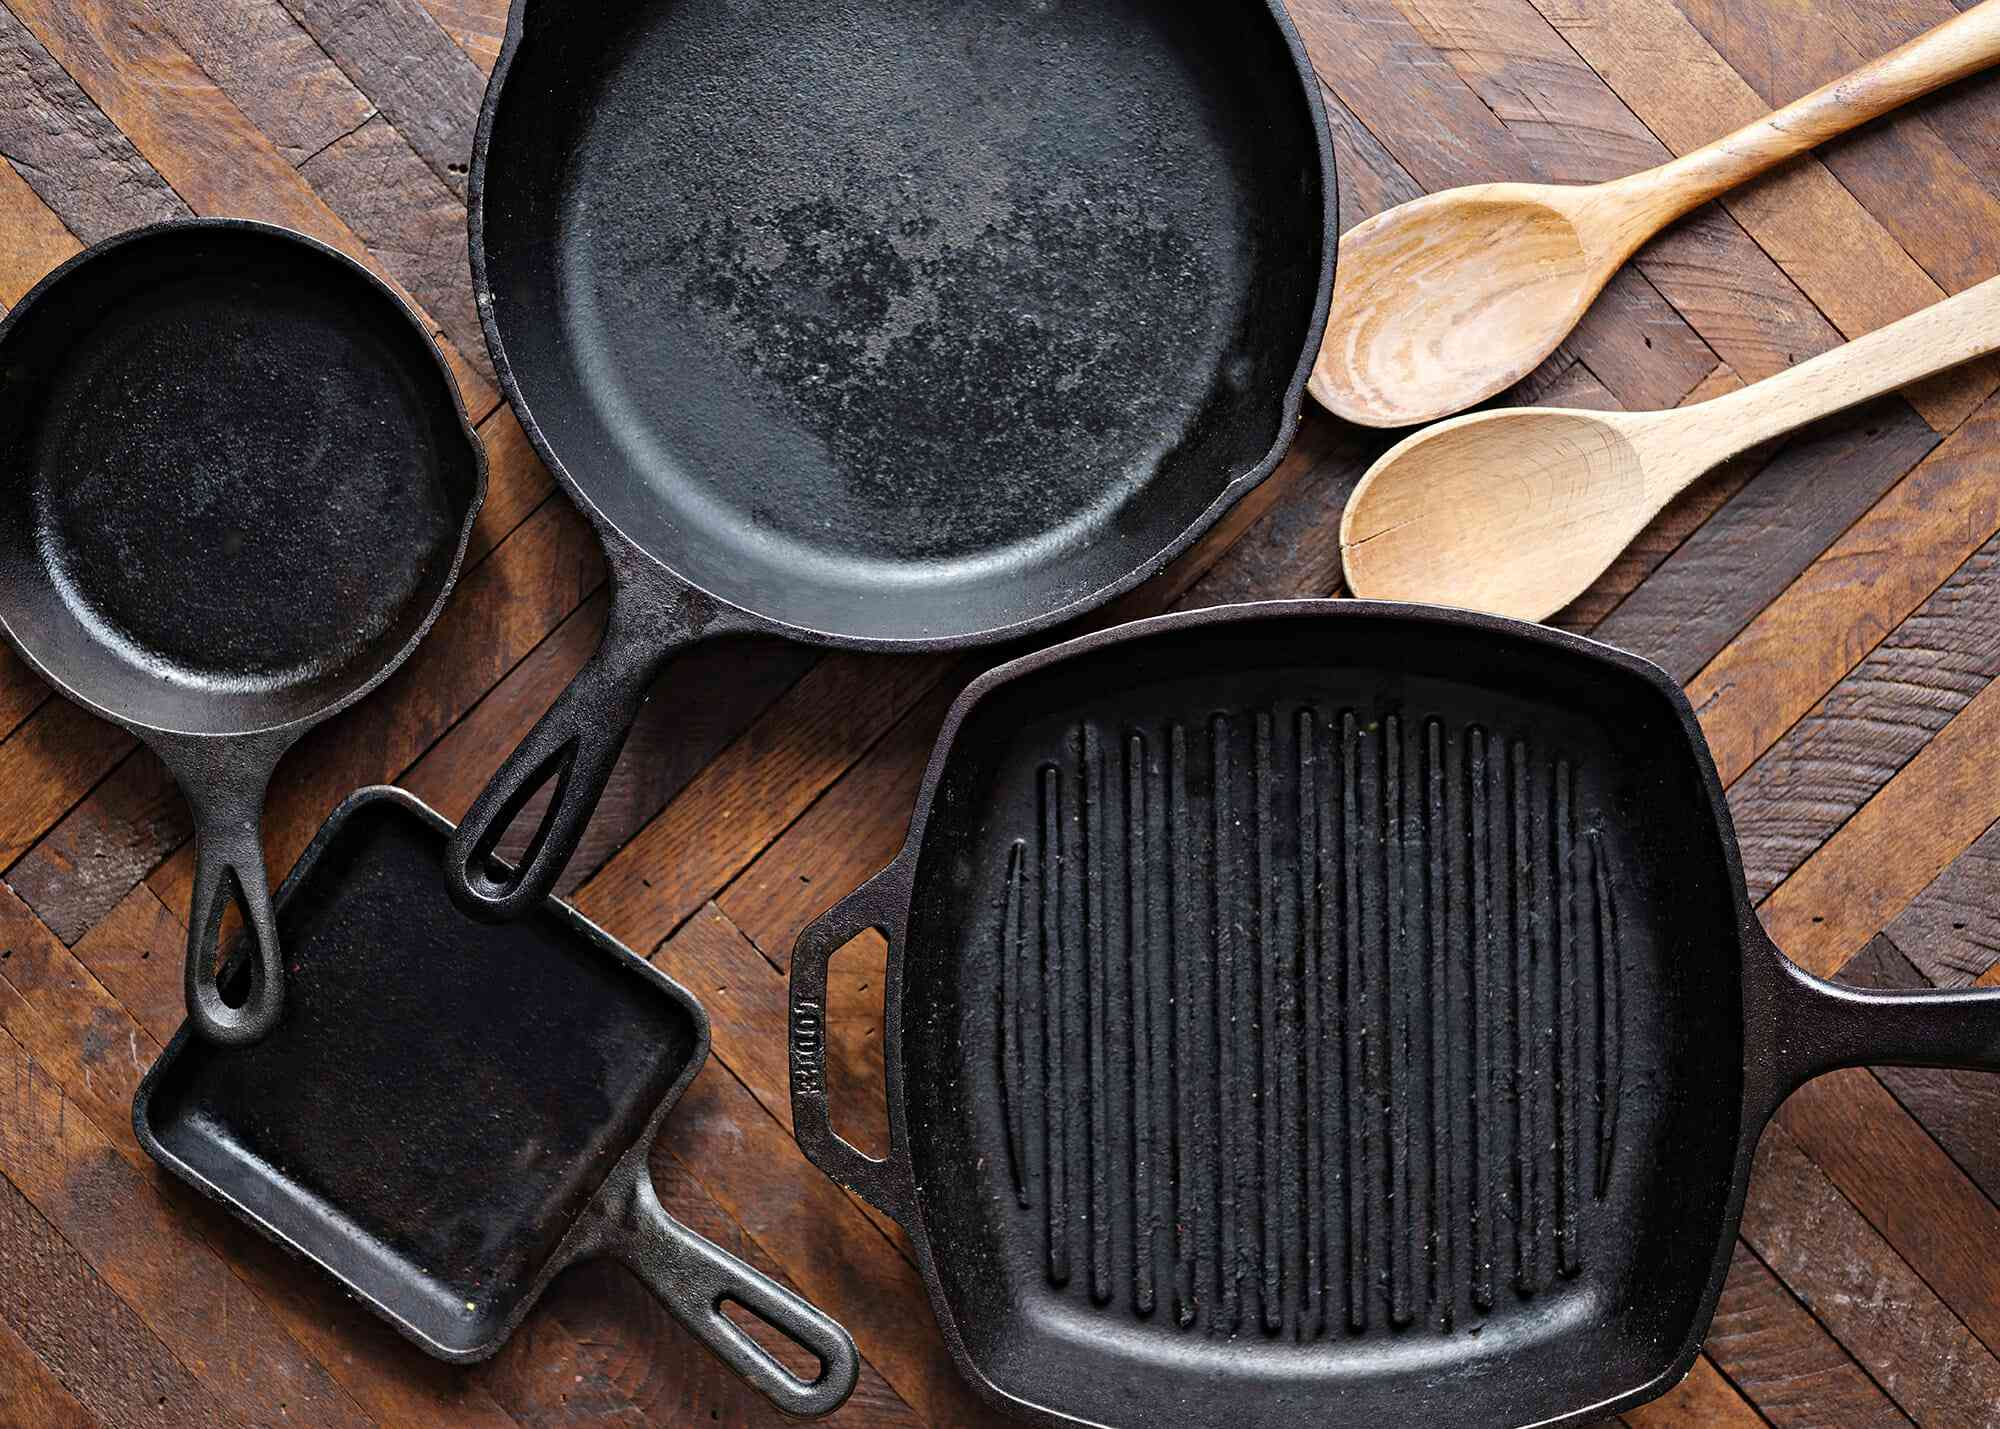 How to Season a Cast Iron Pan - cast iron skillets on a wooden table with wooden spoons nearby